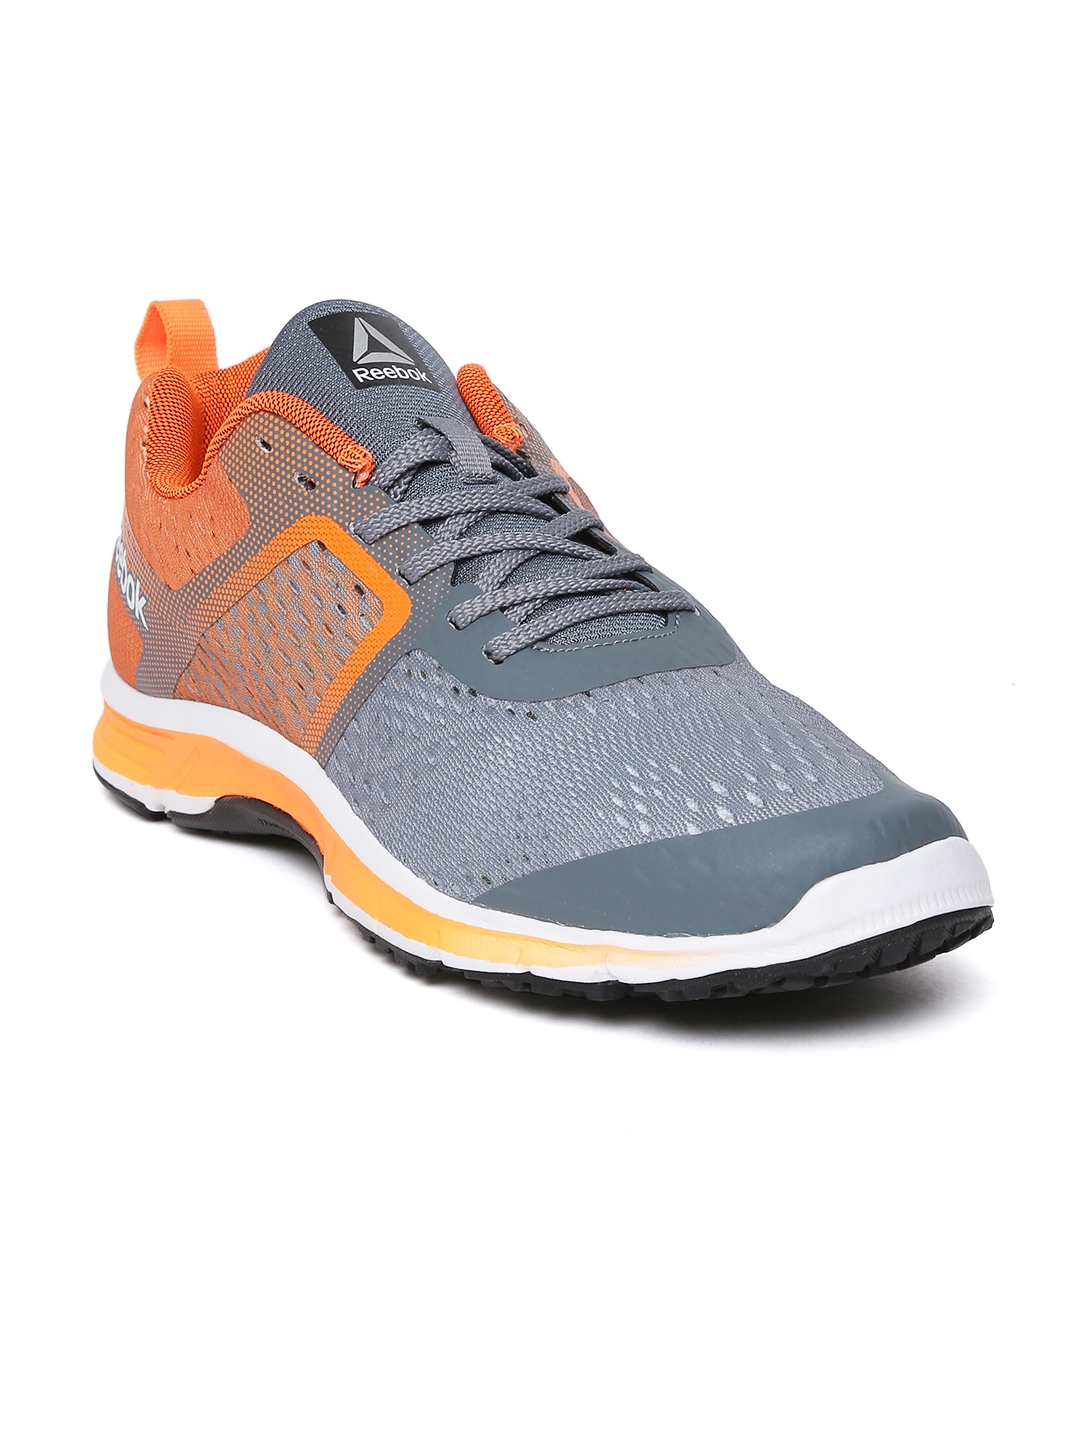 4d4abaf3a0e Buy Reebok Men Grey Ride One Running Shoes - Sports Shoes for Men ...